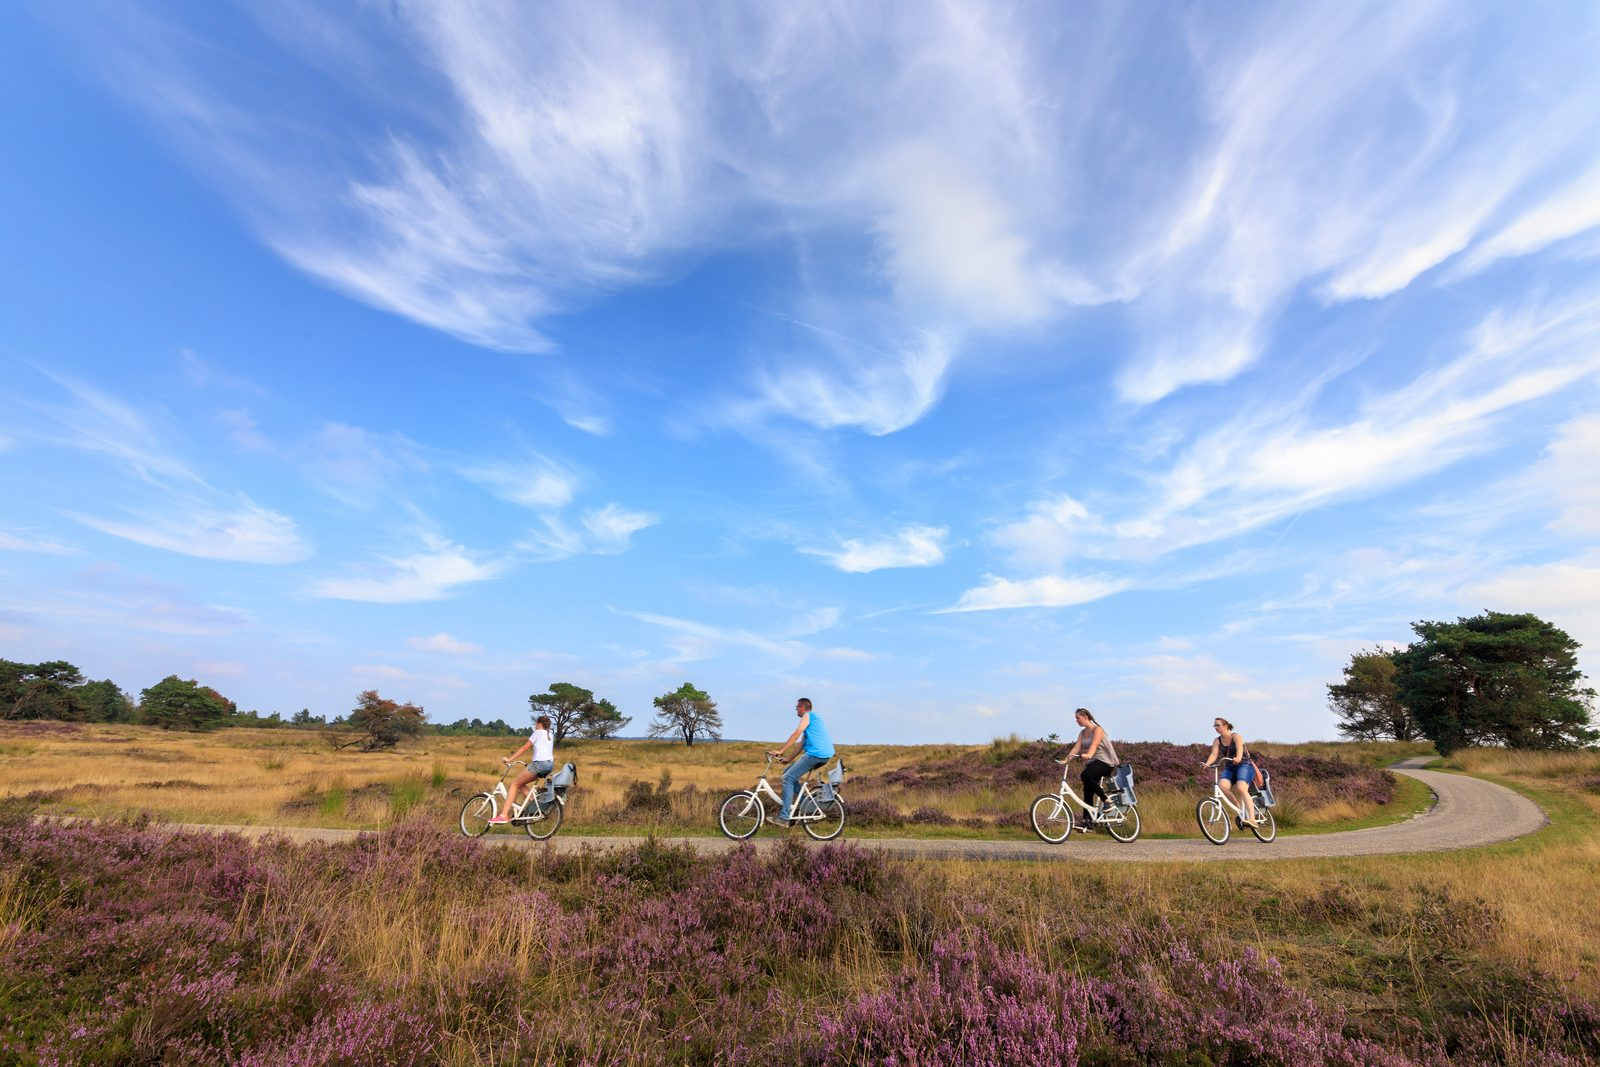 National Park De Hoge Veluwe